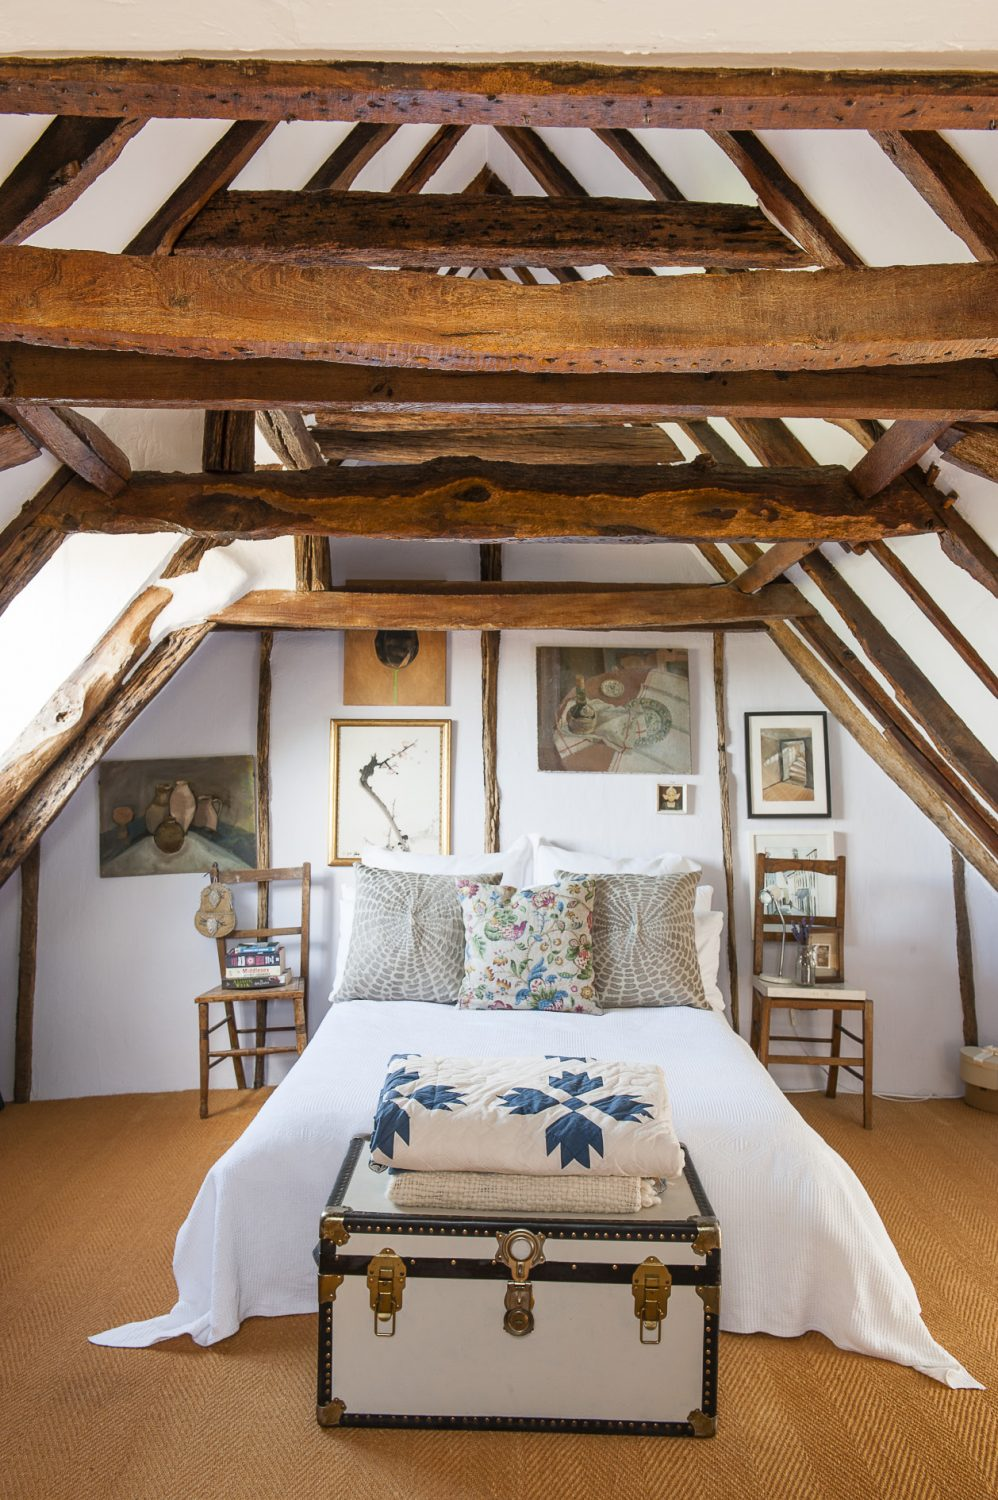 At the very top of the house is a vaulted spare bedroom with its own tiny en suite